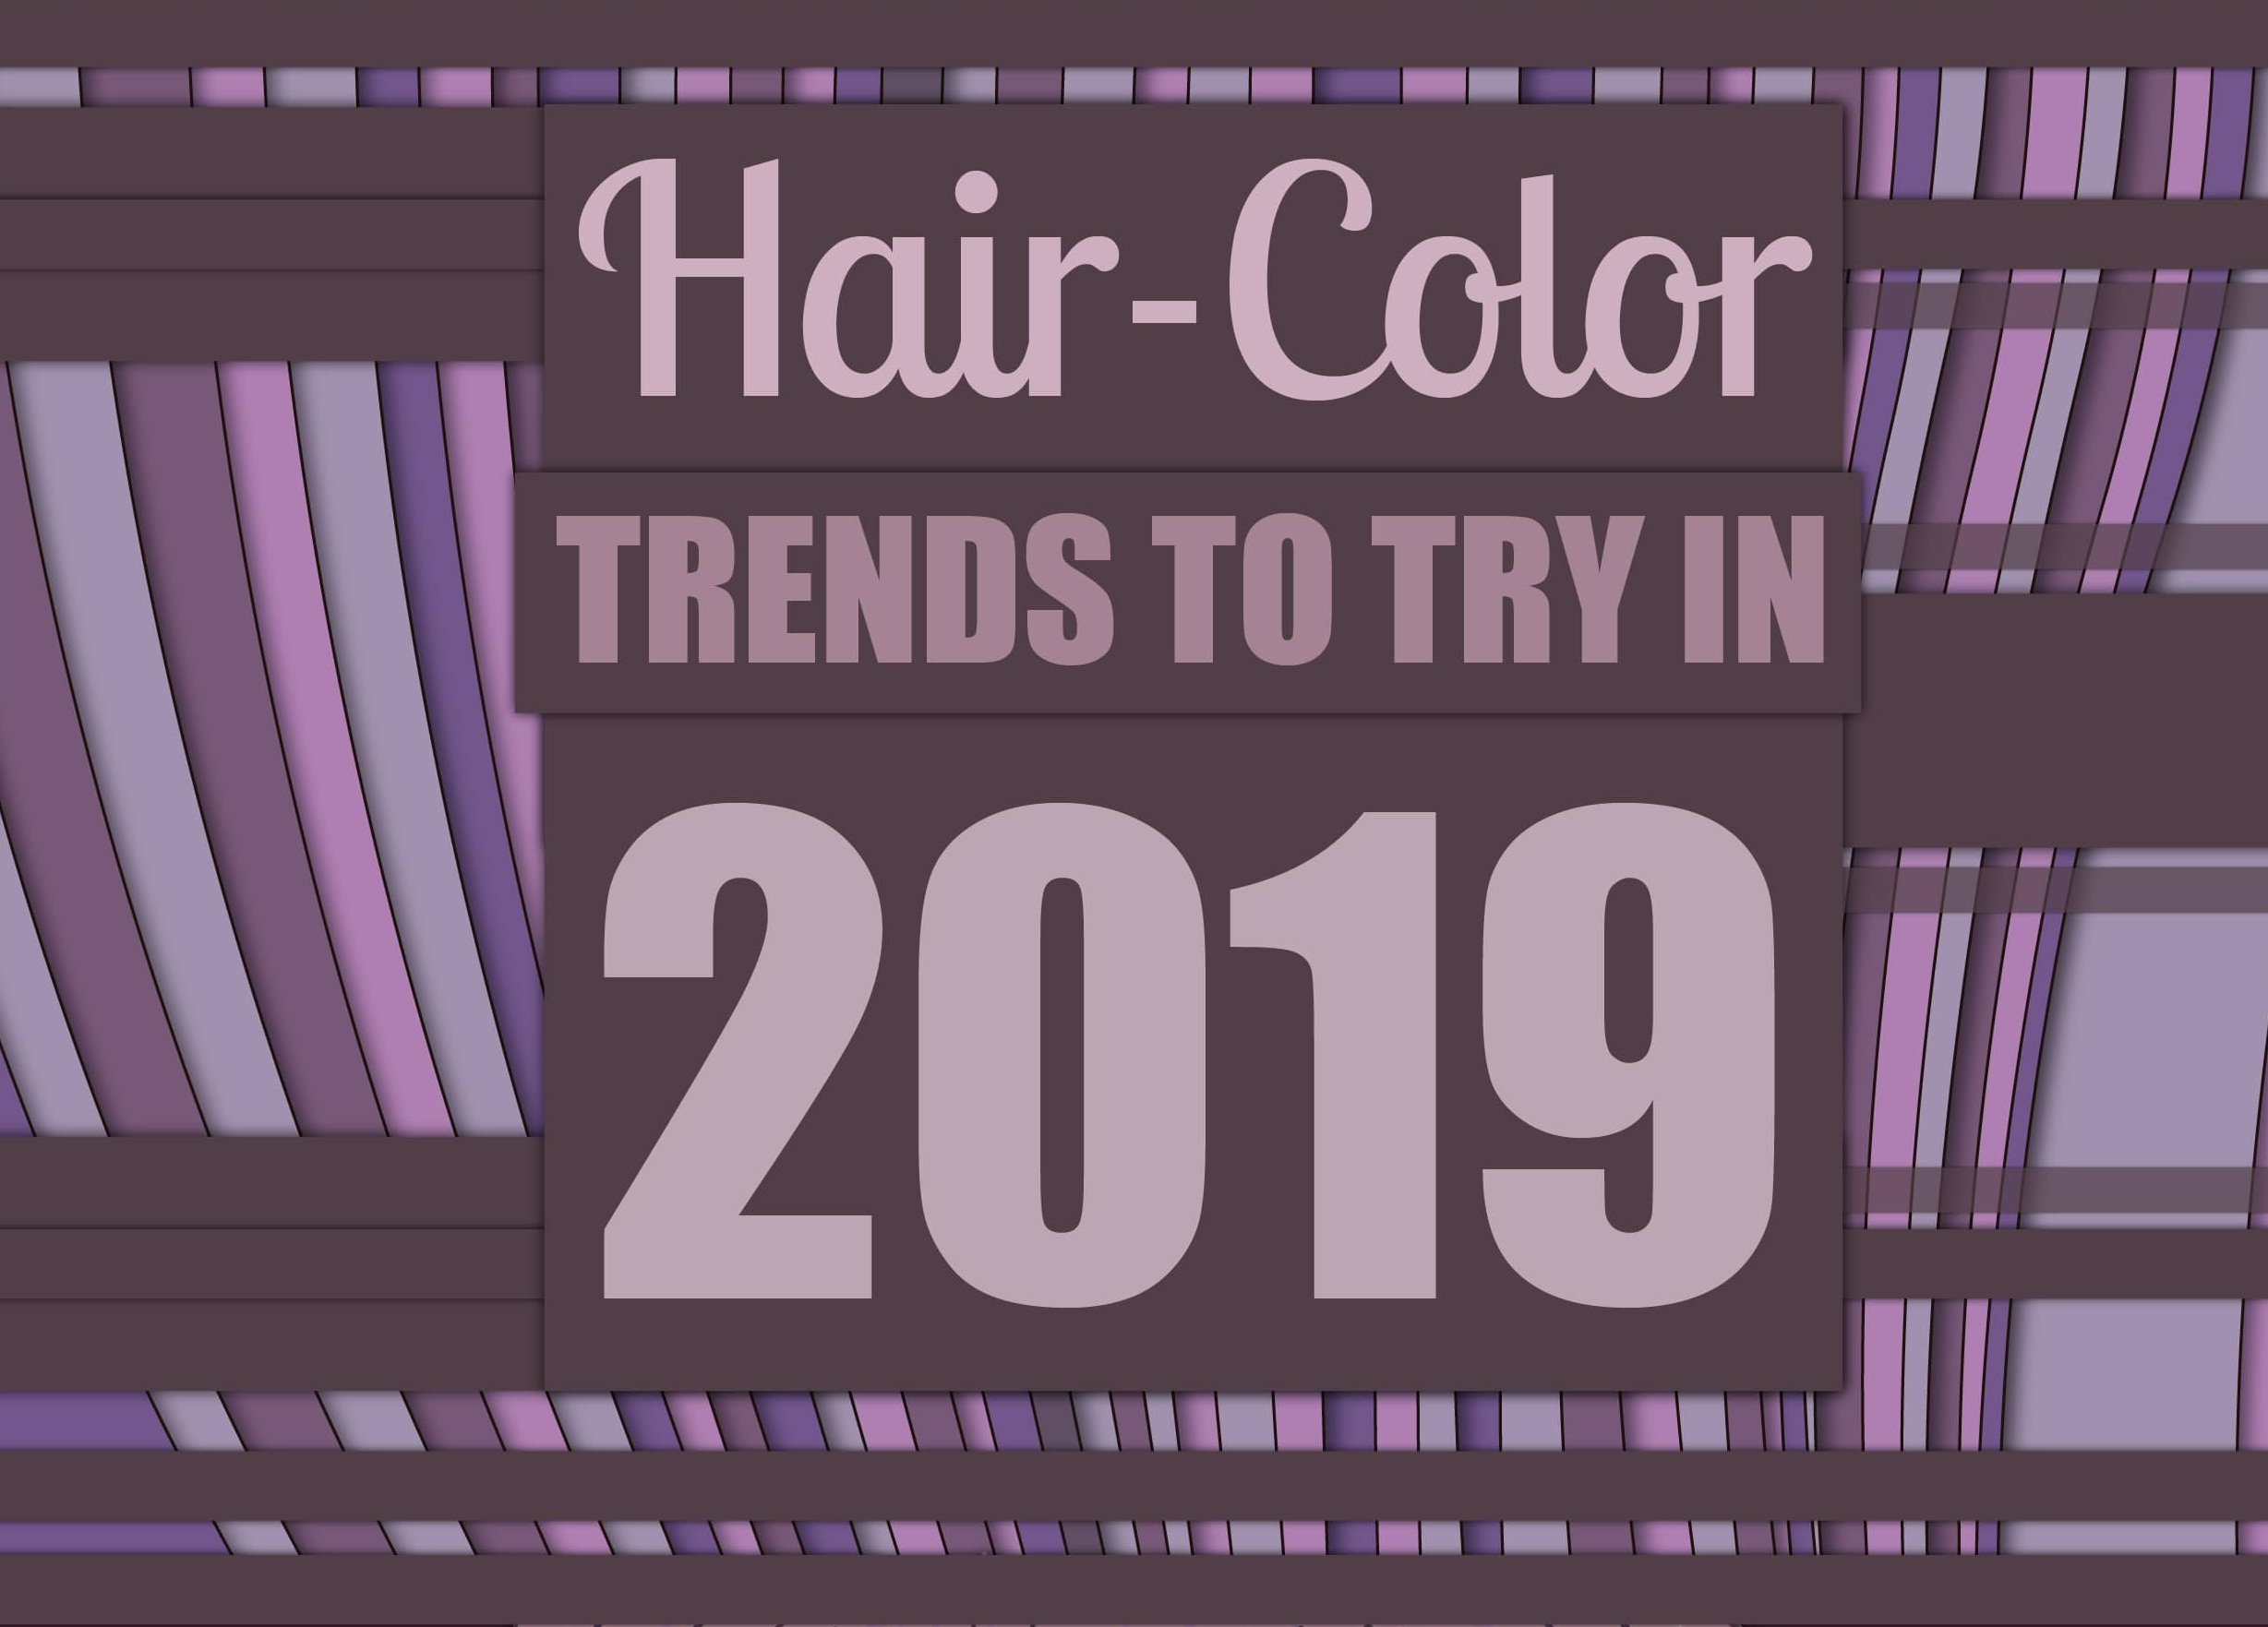 Hair Color Trends To Try in 2019 - Thumbnail